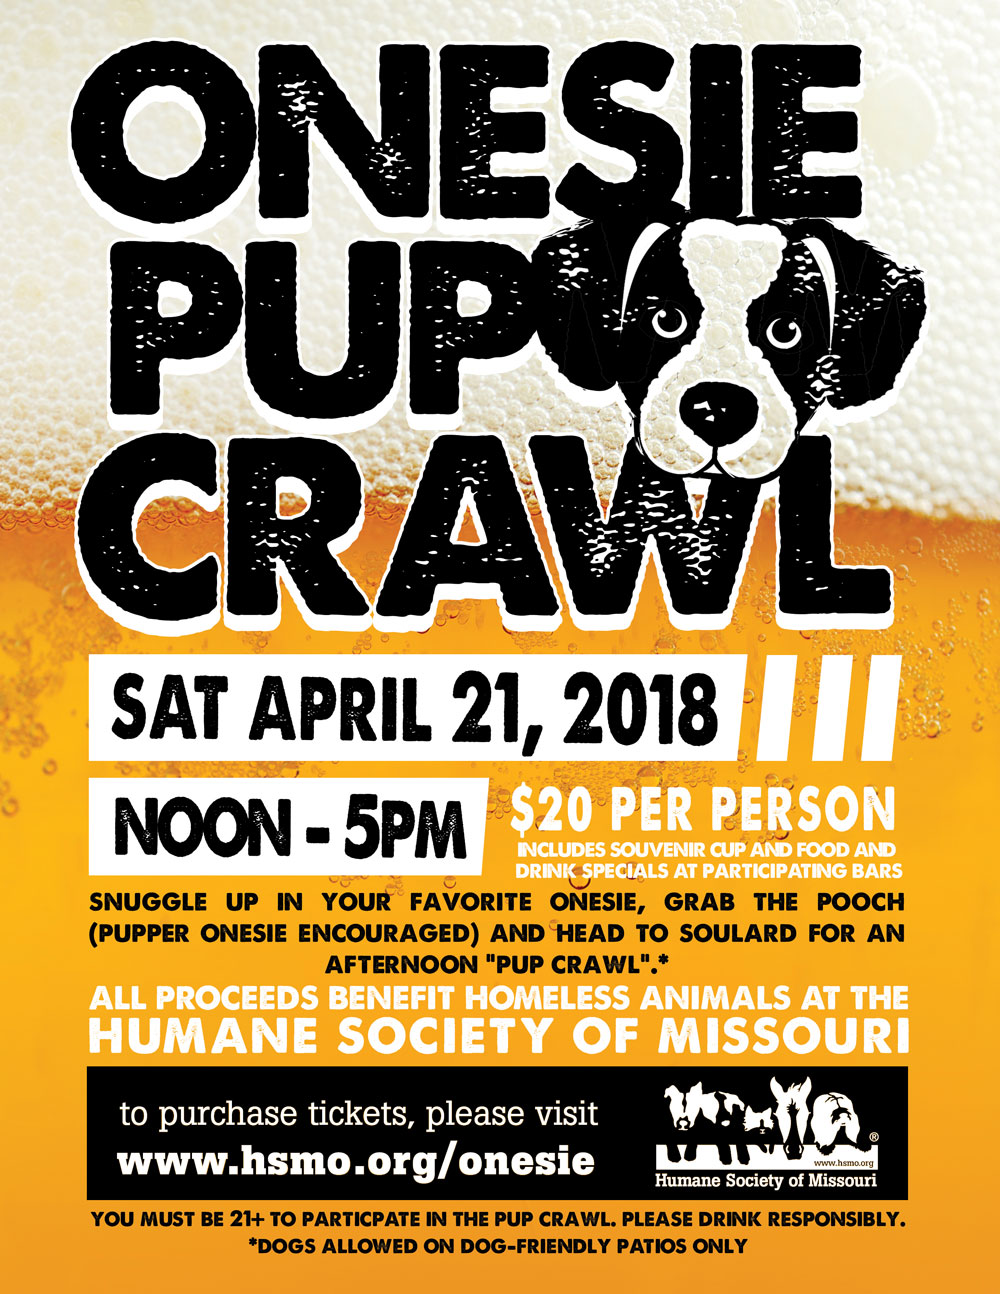 HSMO's Onesie Pup Crawl is on April 21 2018